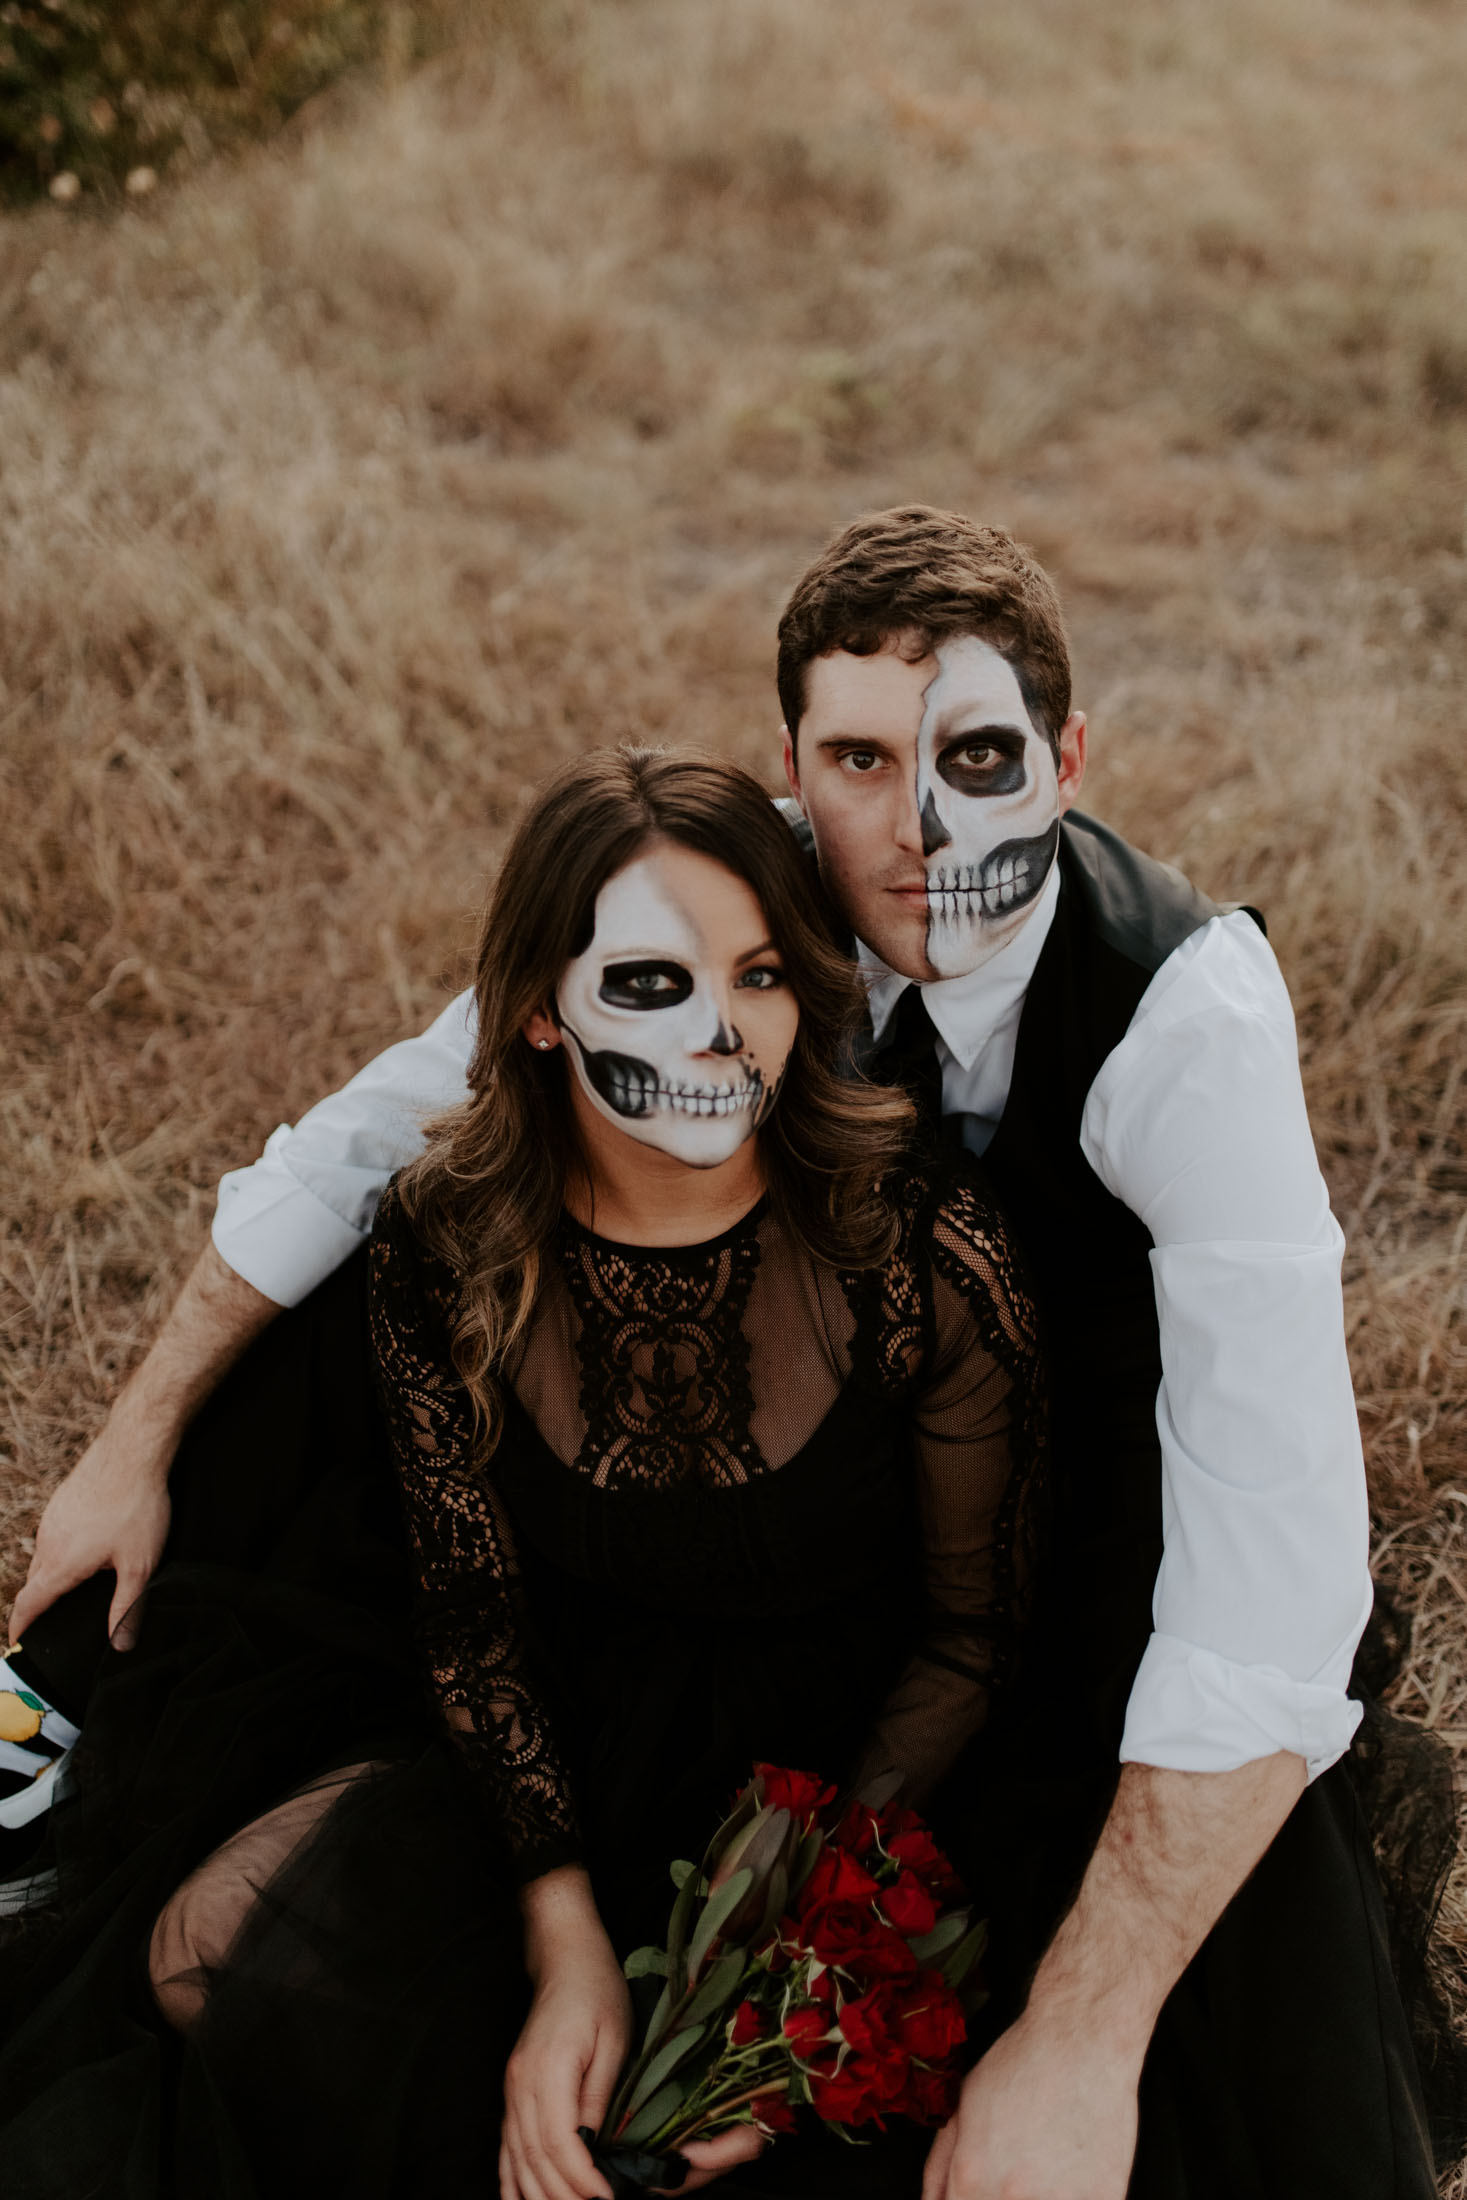 skull makeup faces looking at the camera during a spooky themed photography session